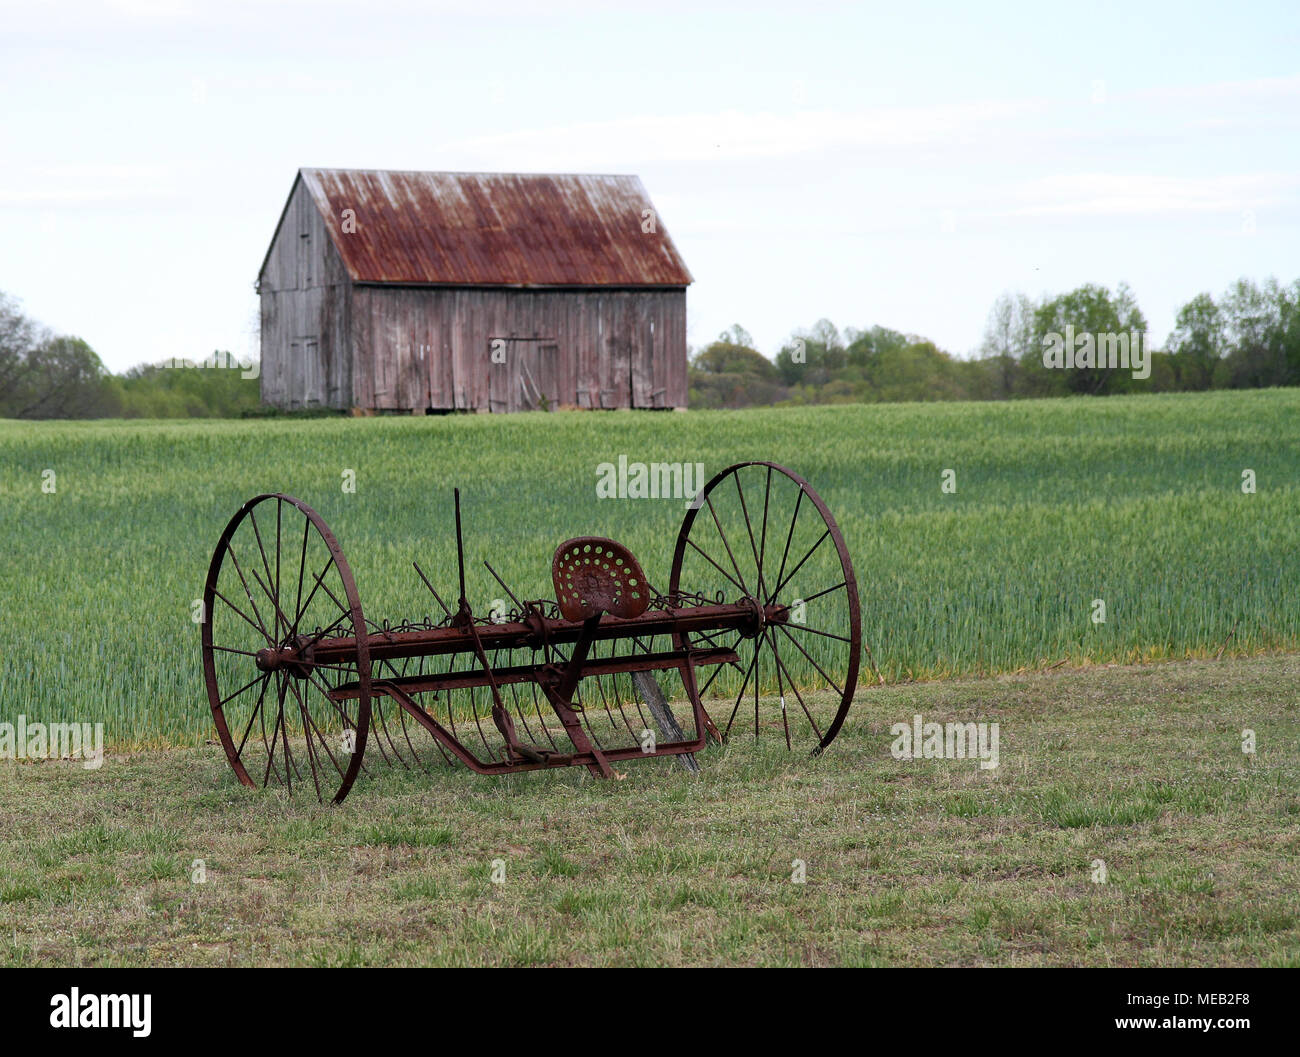 antique horse drawn cultivator with farm field and tobacco barn in background - Stock Image